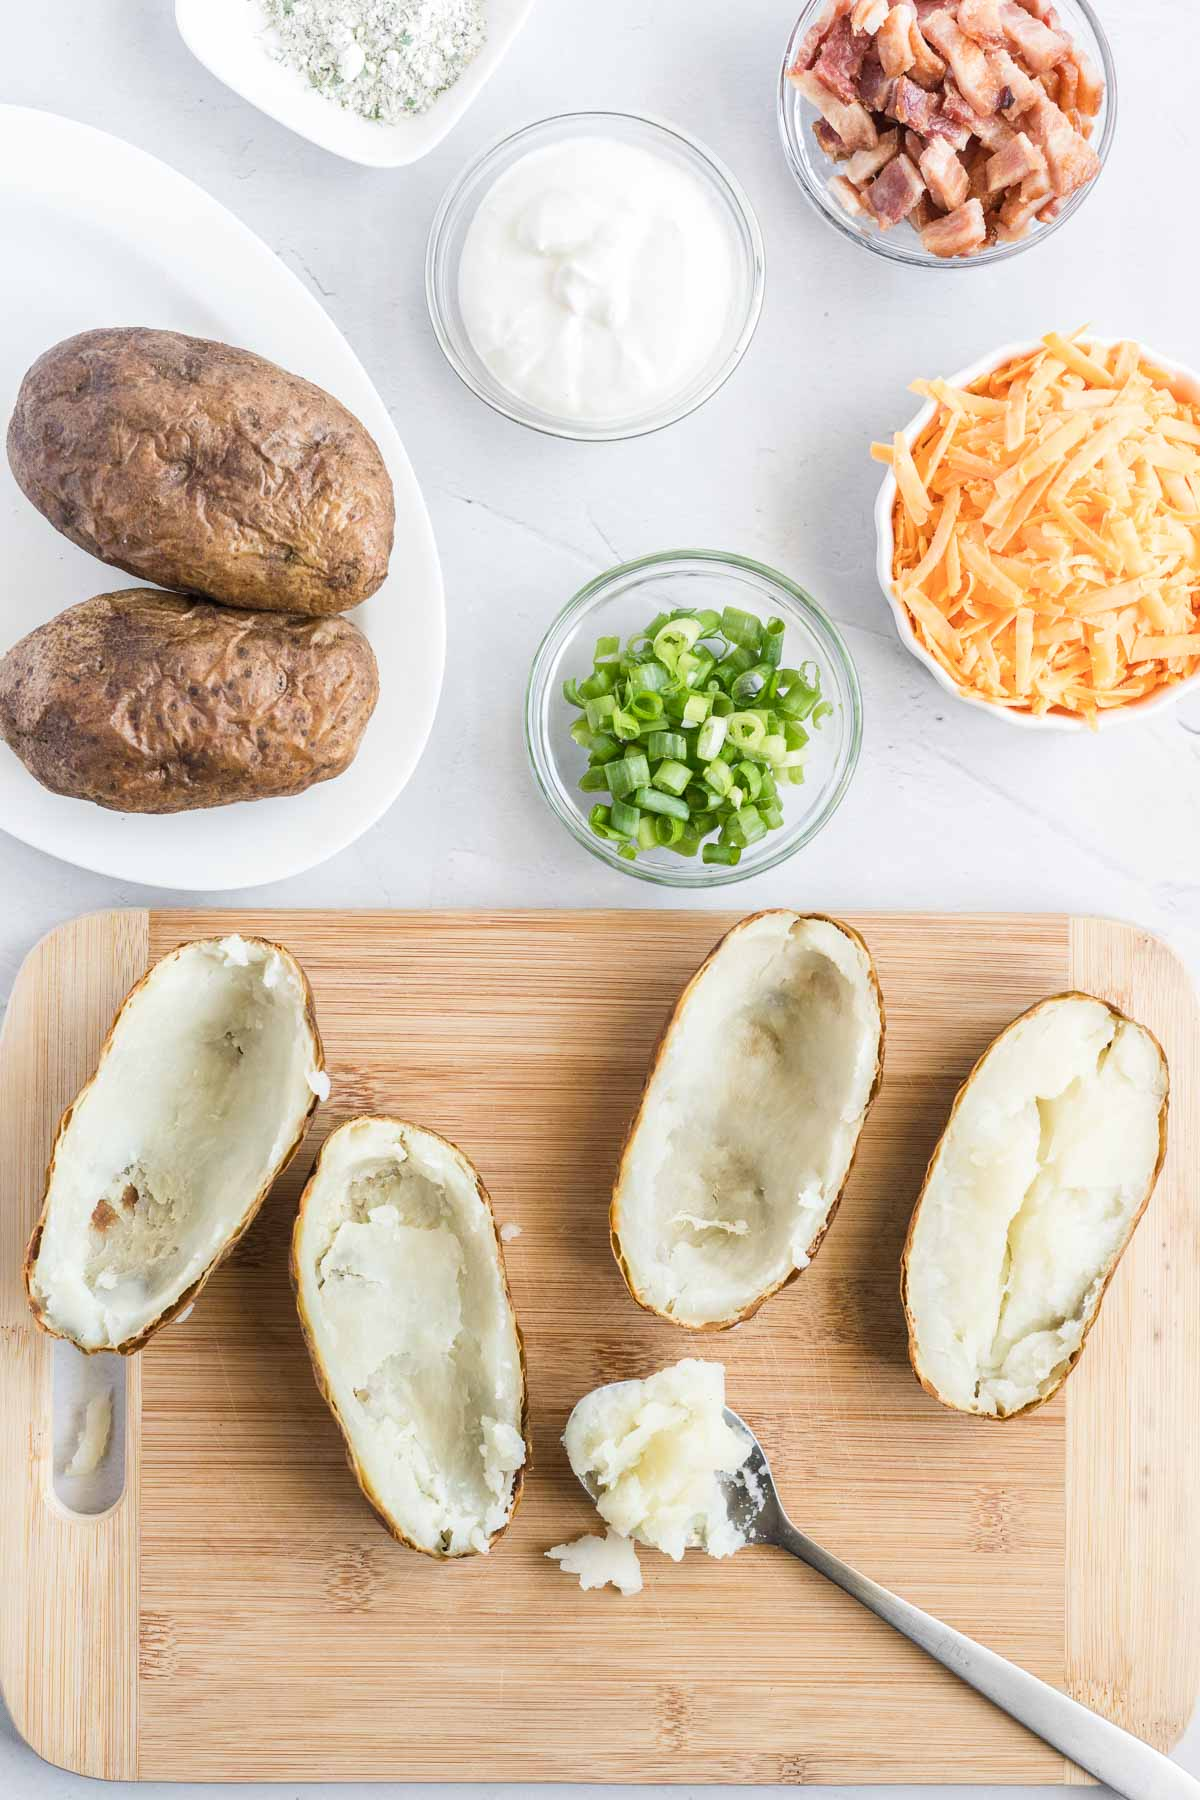 Baked potatoes cut in half with inside scooped out with a spoon.